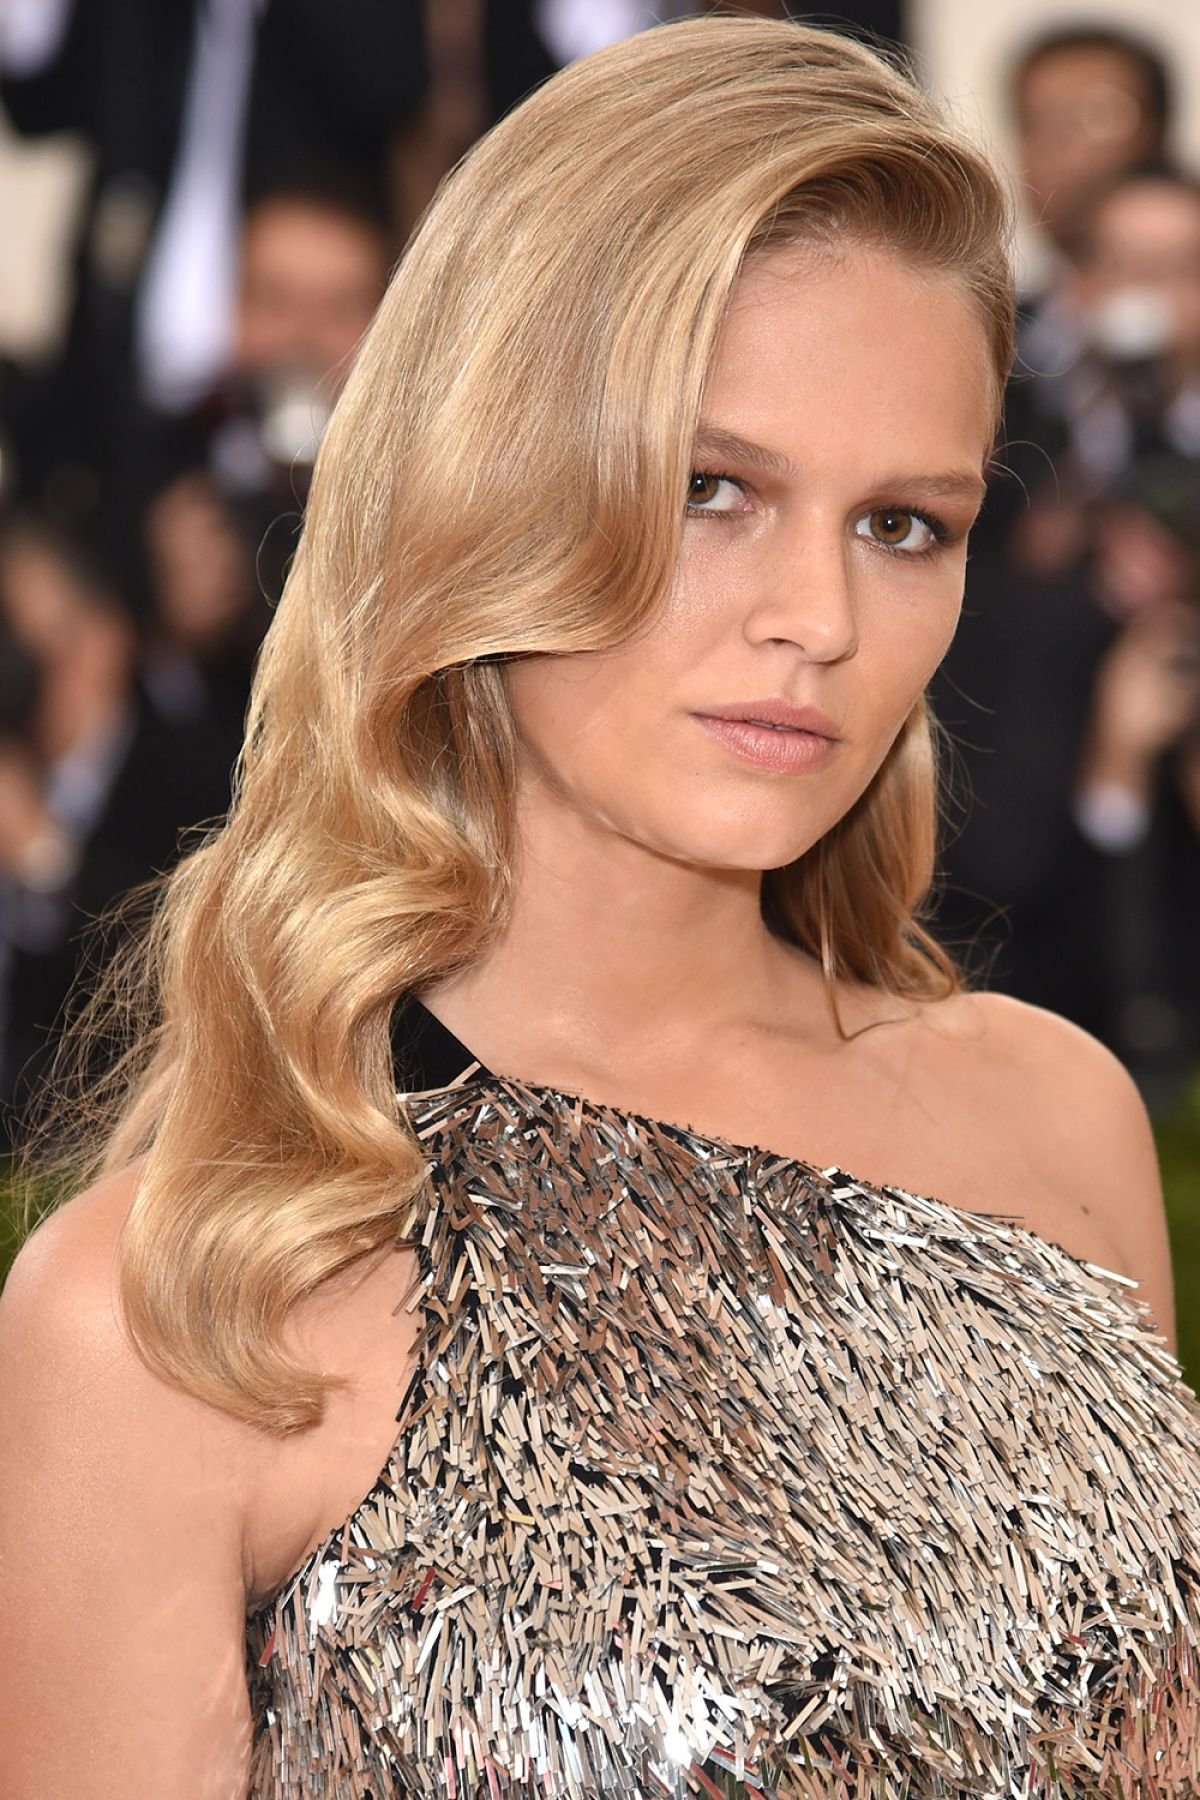 Anna Ewers By Karl Lagerfeld For: ANNA EWERS At Costume Institute Gala 2016 In New York 05